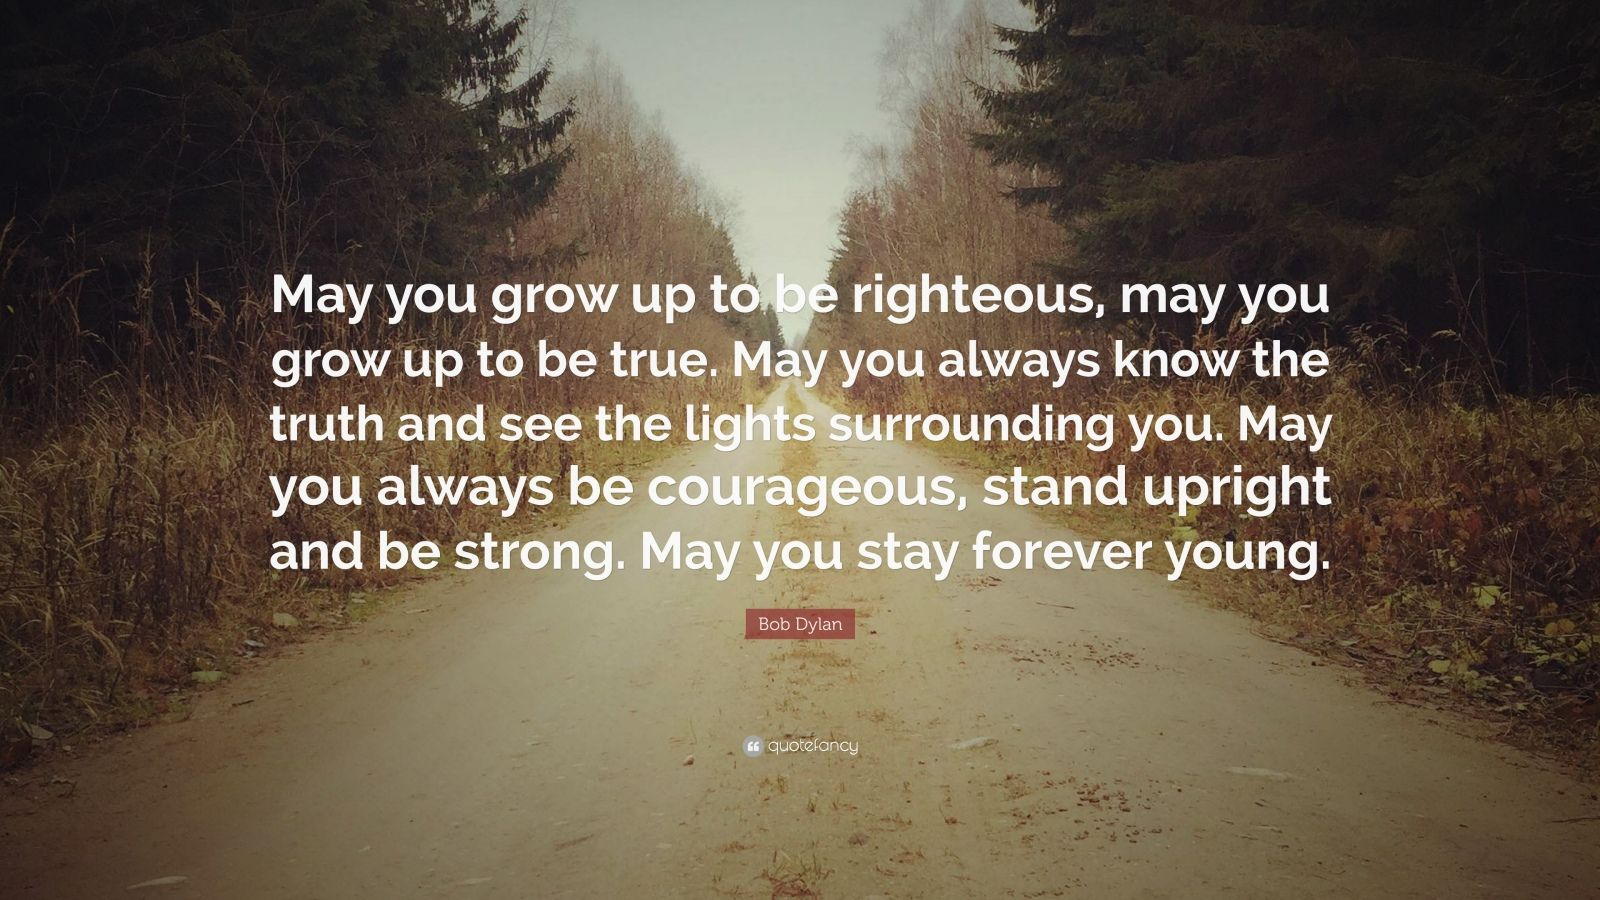 """Bob Dylan Quote: """"May you grow up to be righteous, may you grow up to be true. May you always know the truth and see the lights surrounding you. May you always be courageous, stand upright and be strong. May you stay forever young."""""""